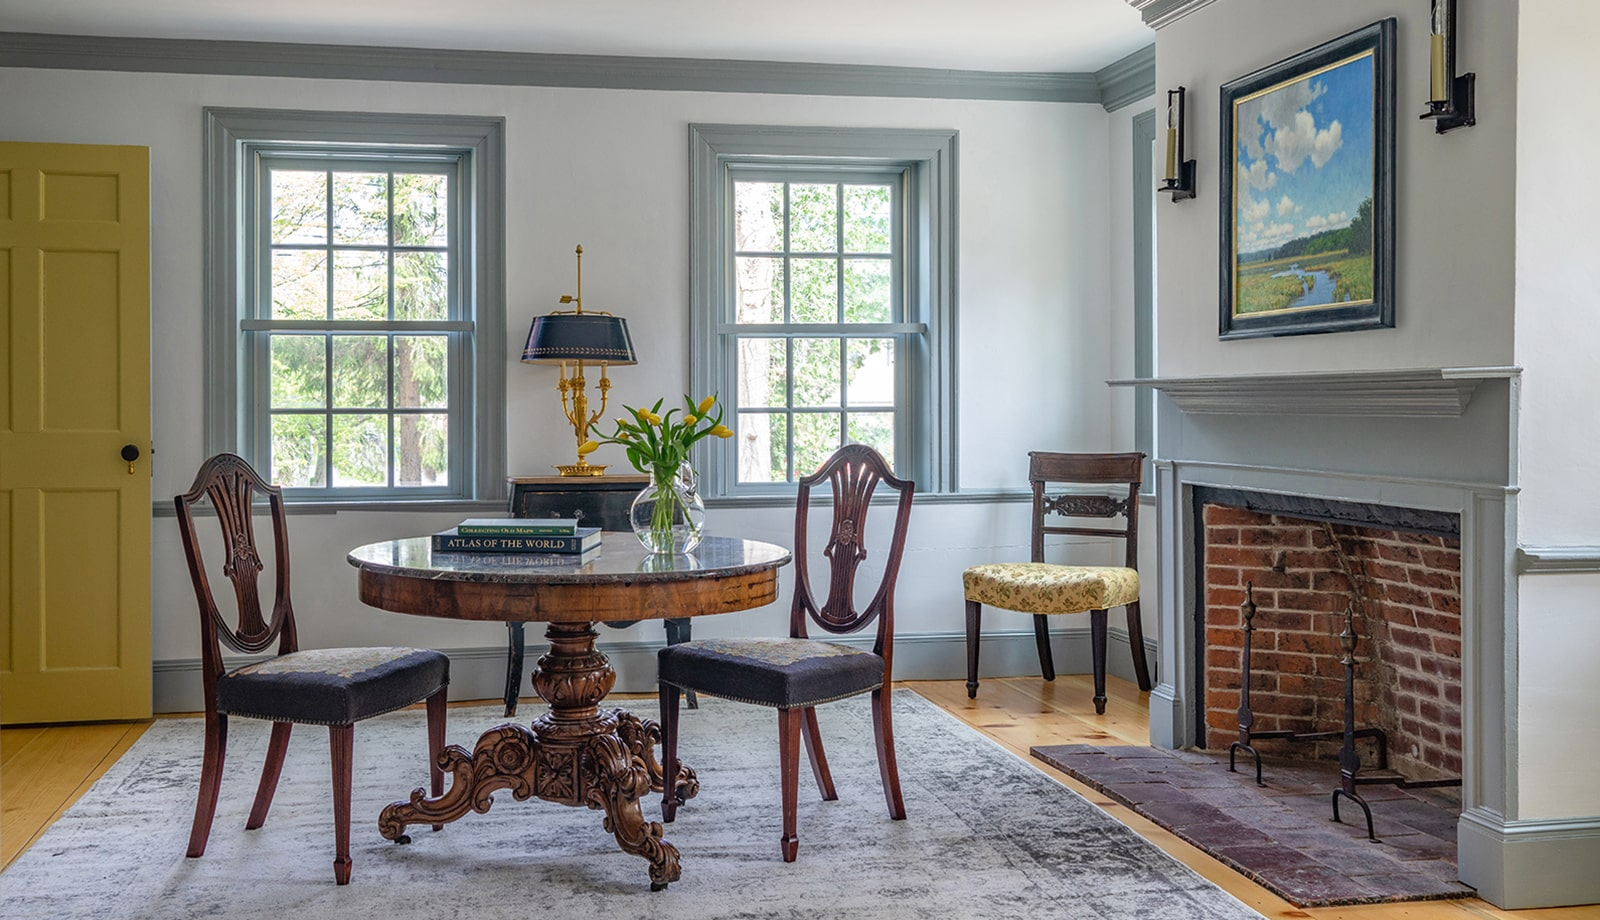 Centre Farm Lynnfield MA Sitting Room featured